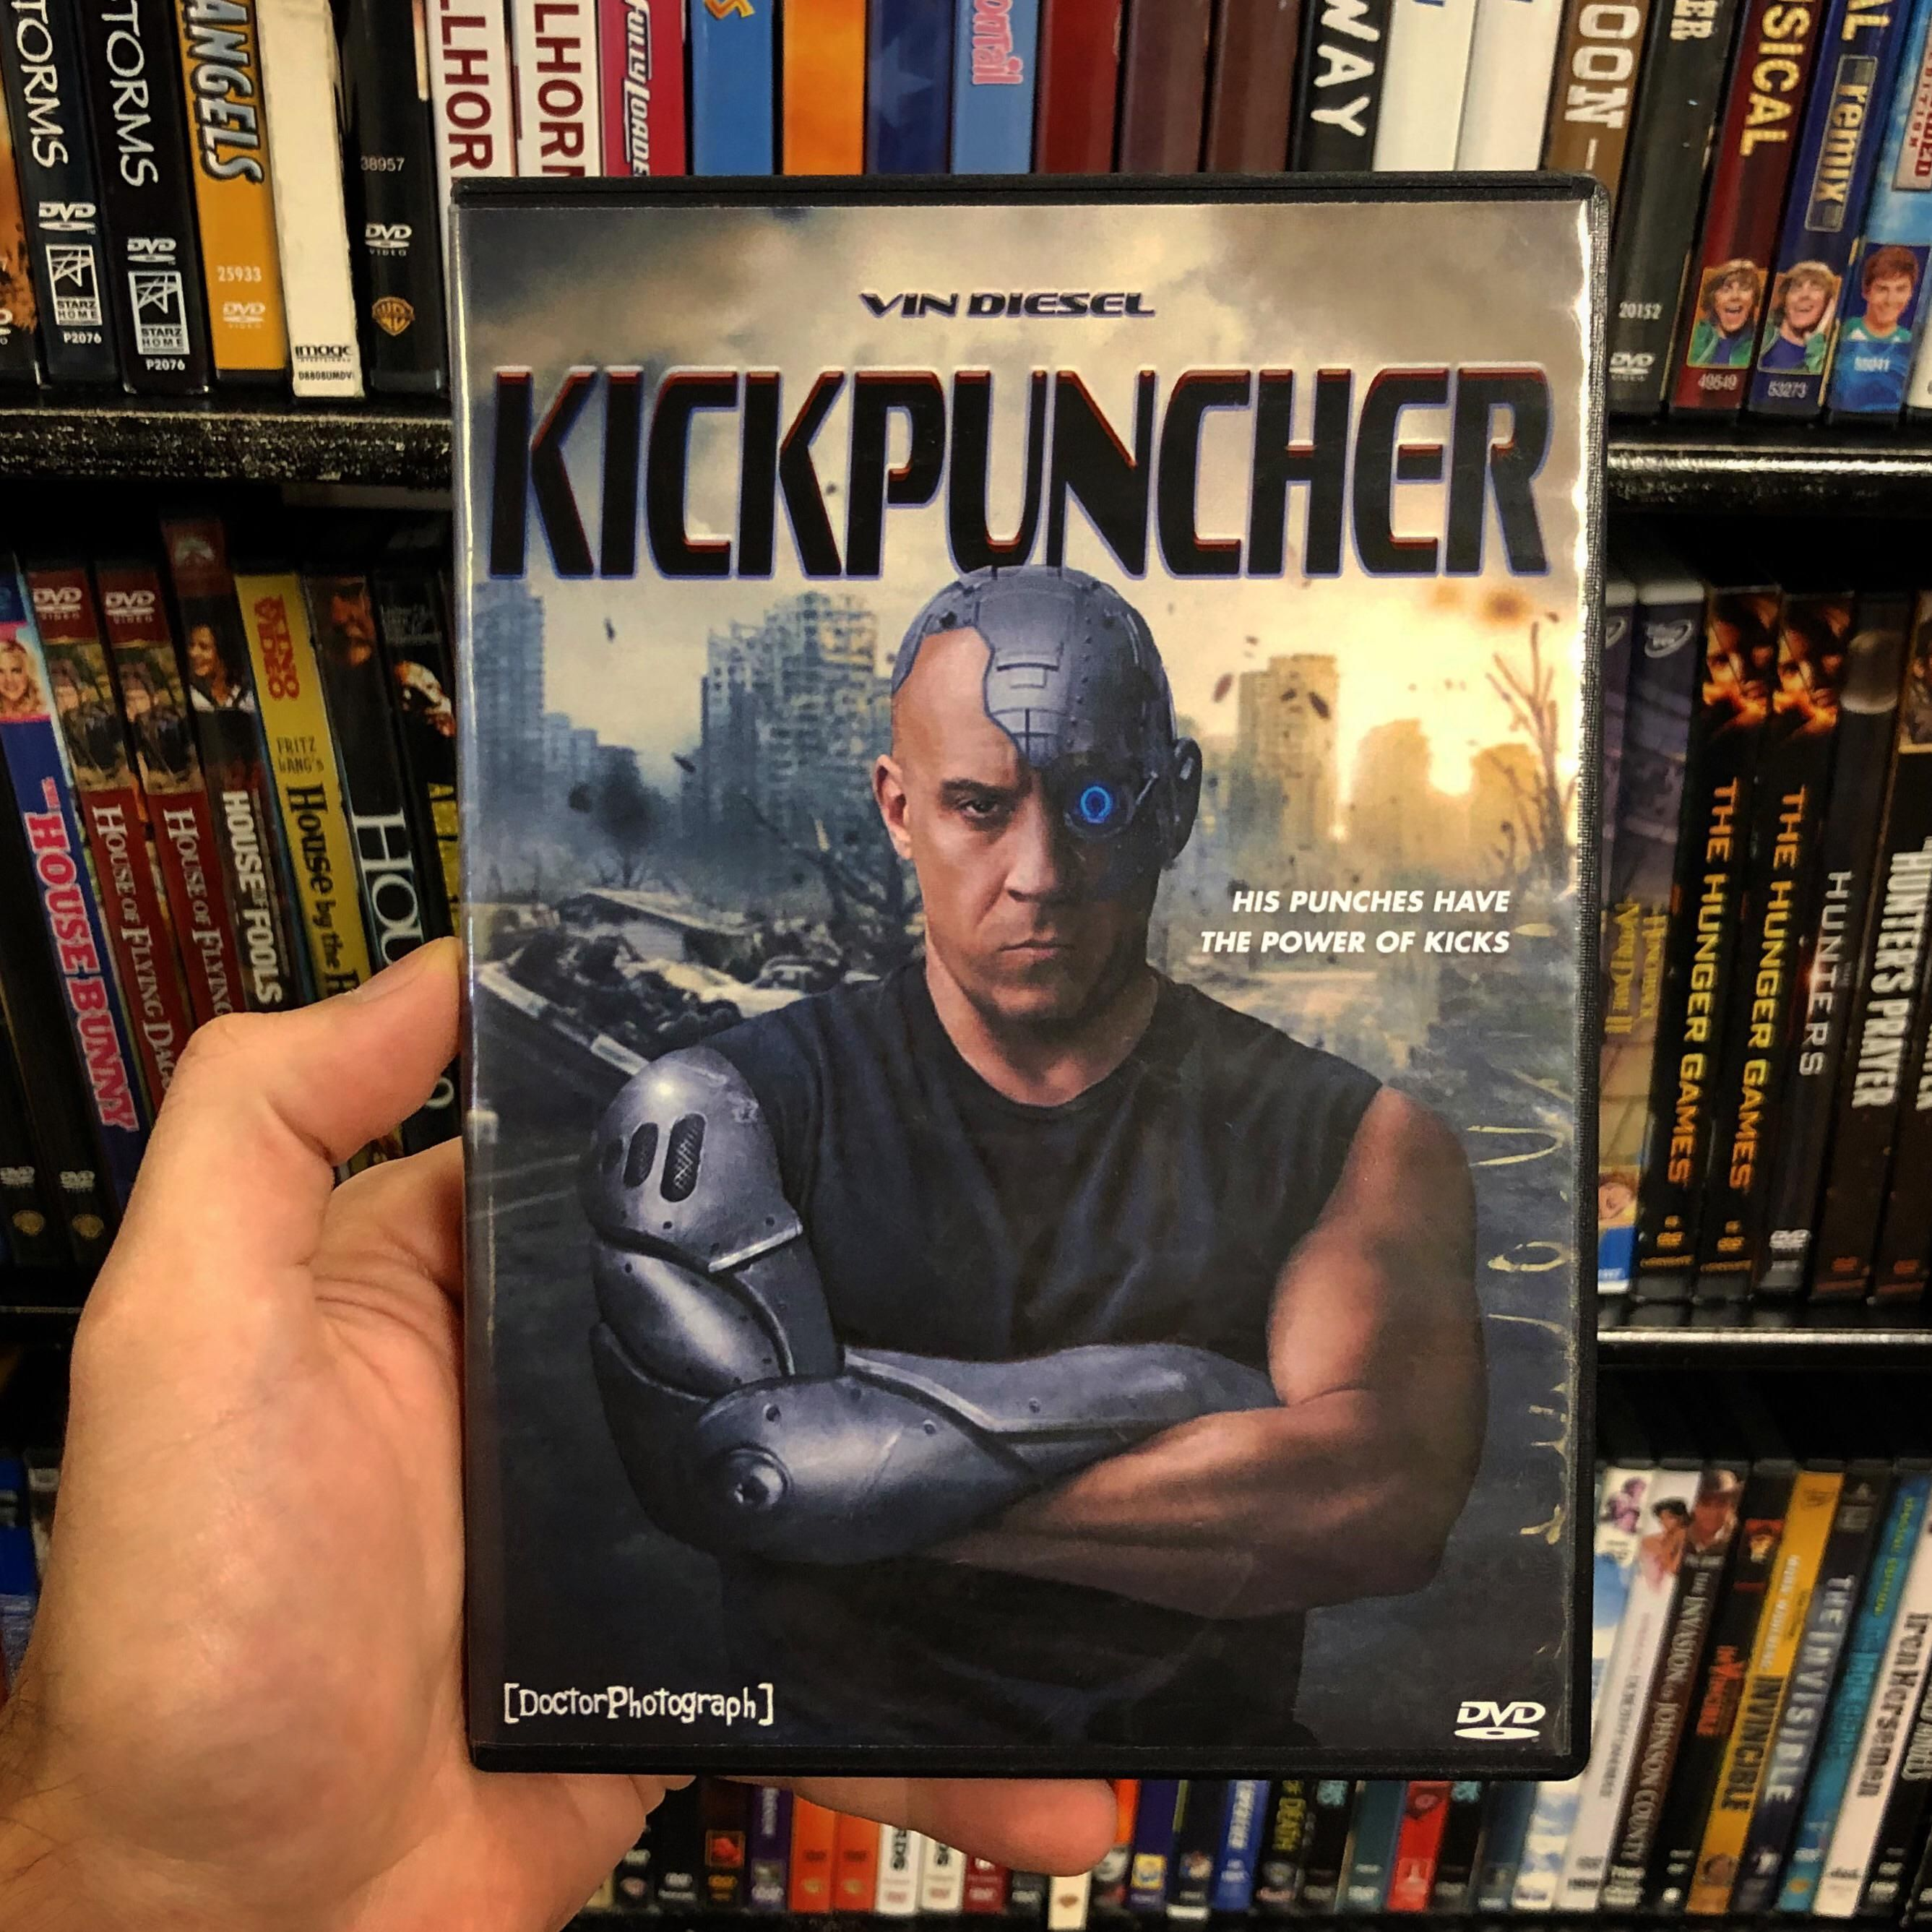 His punches have the power of kicks!